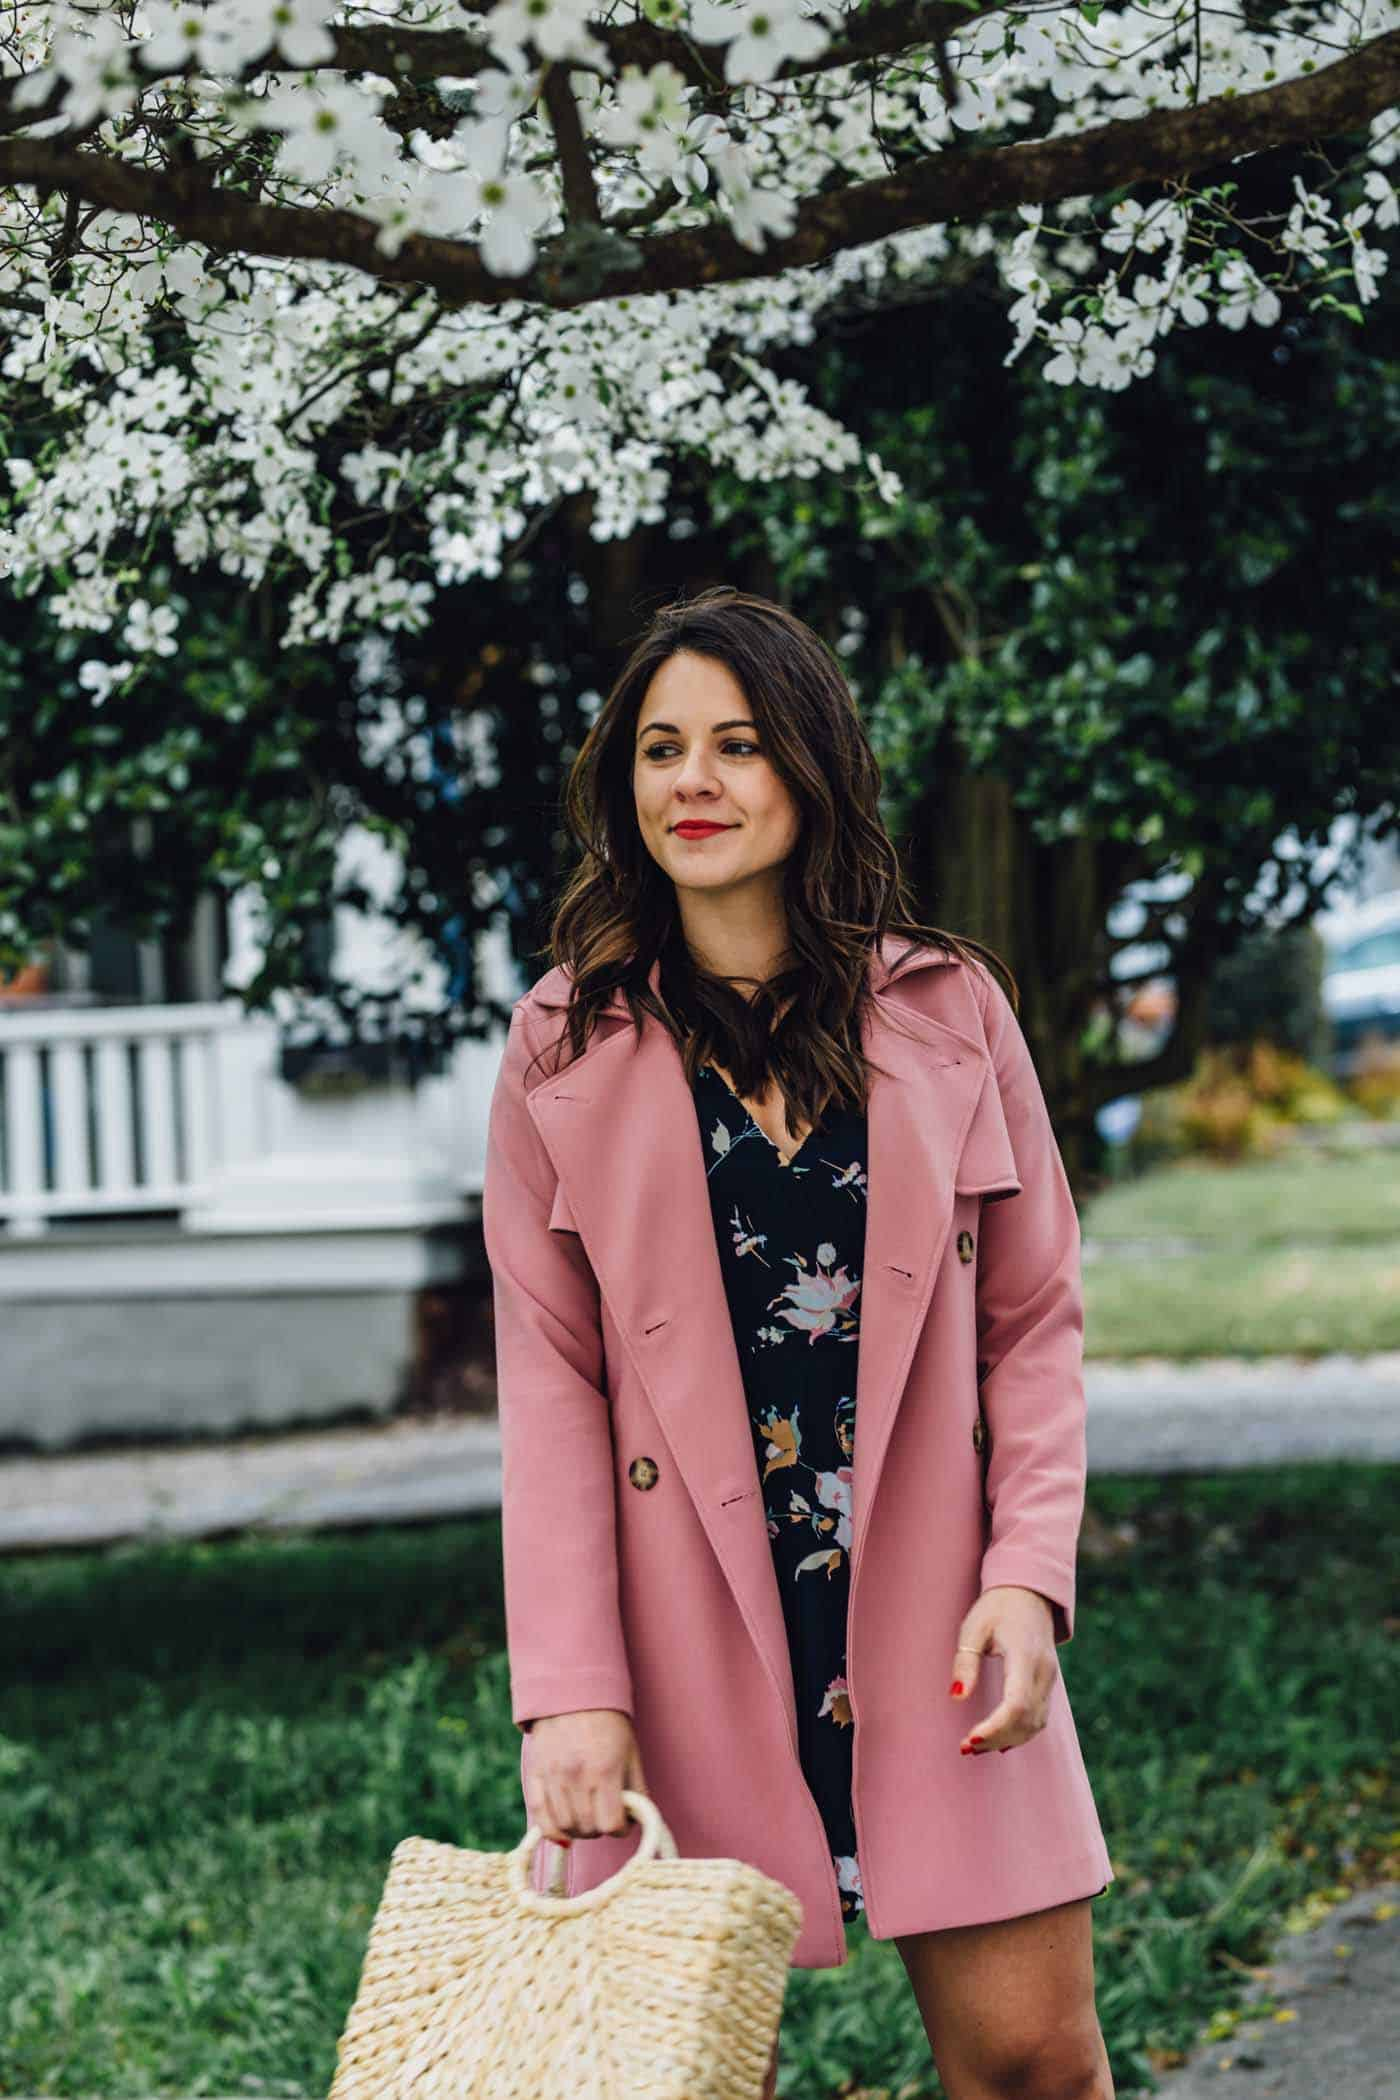 spring floral wrap dress, pink trench coat for spring - My Style Vita